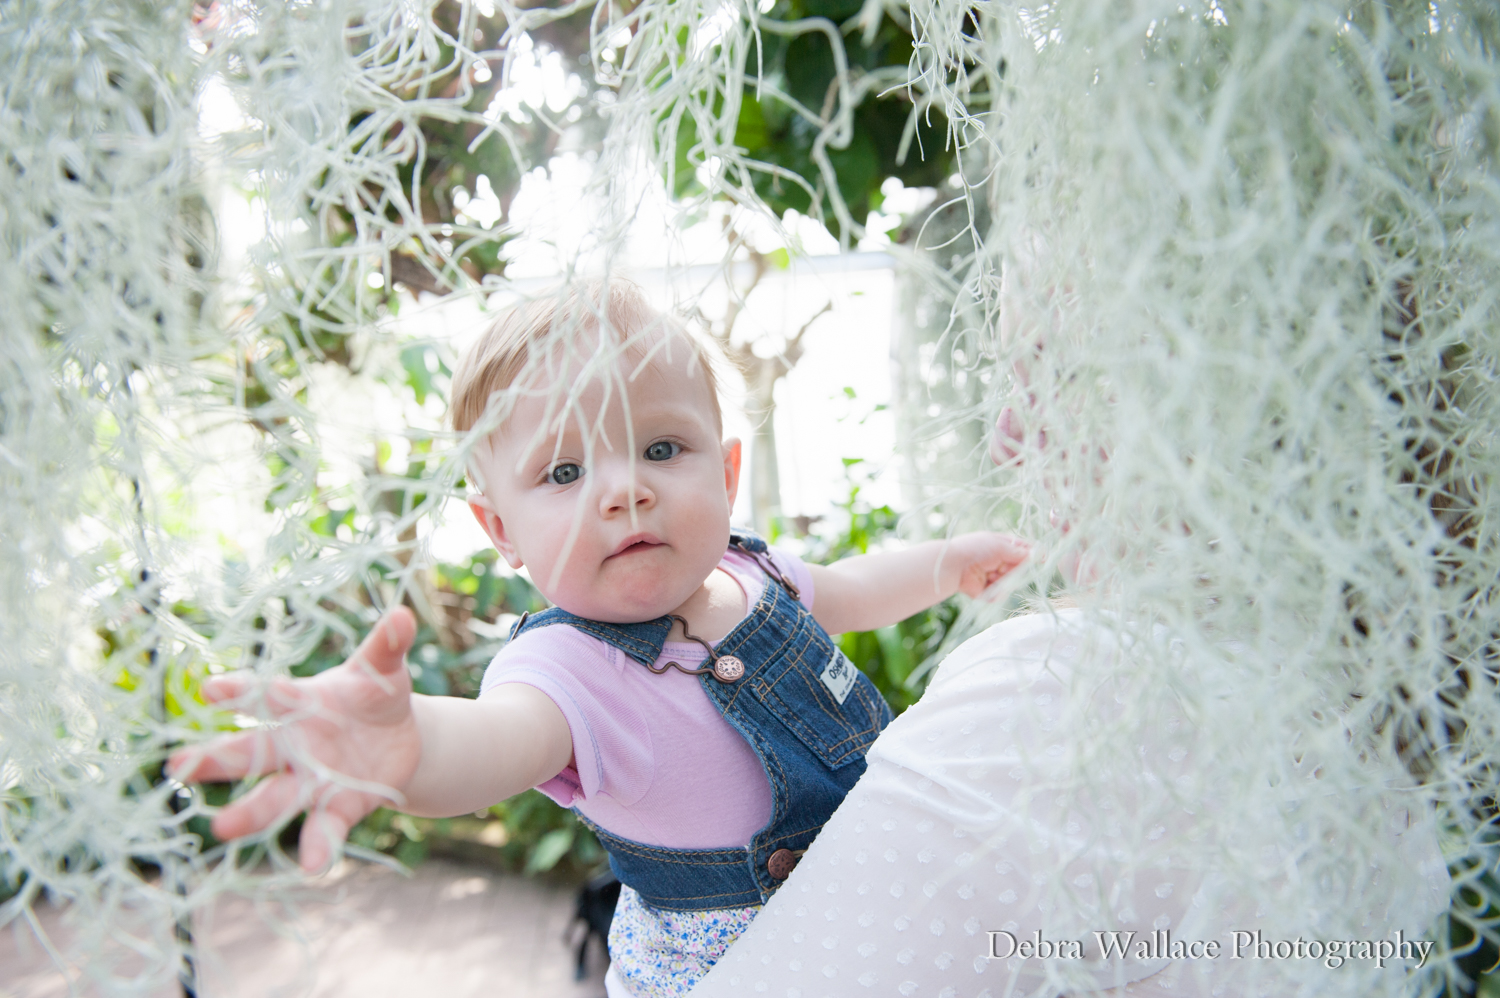 Top 5 Indoor Locations for Portrait Photography in Rochester